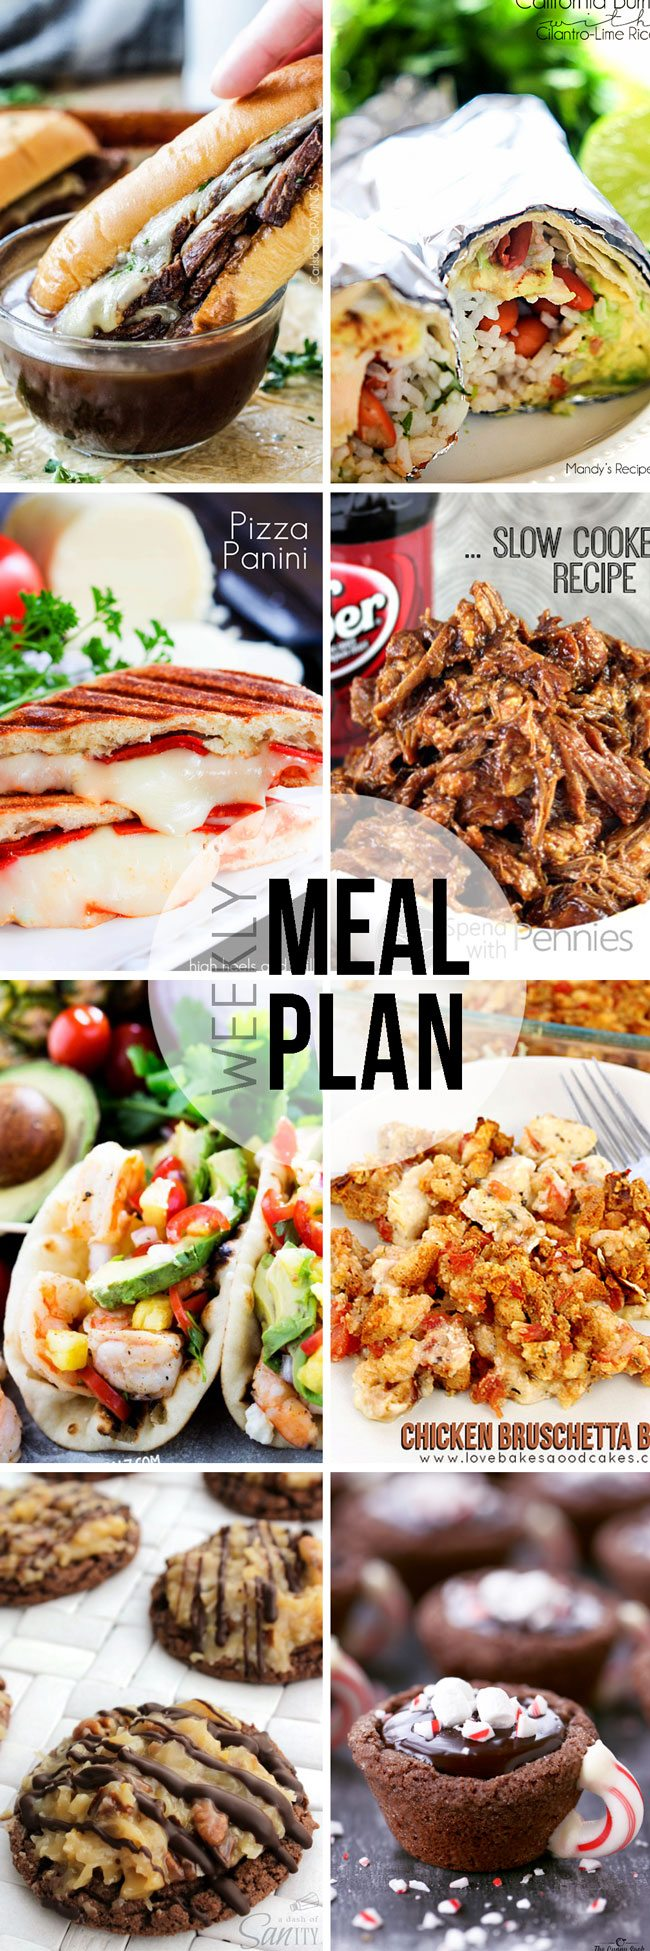 Meal-Plan---Pinterest-26